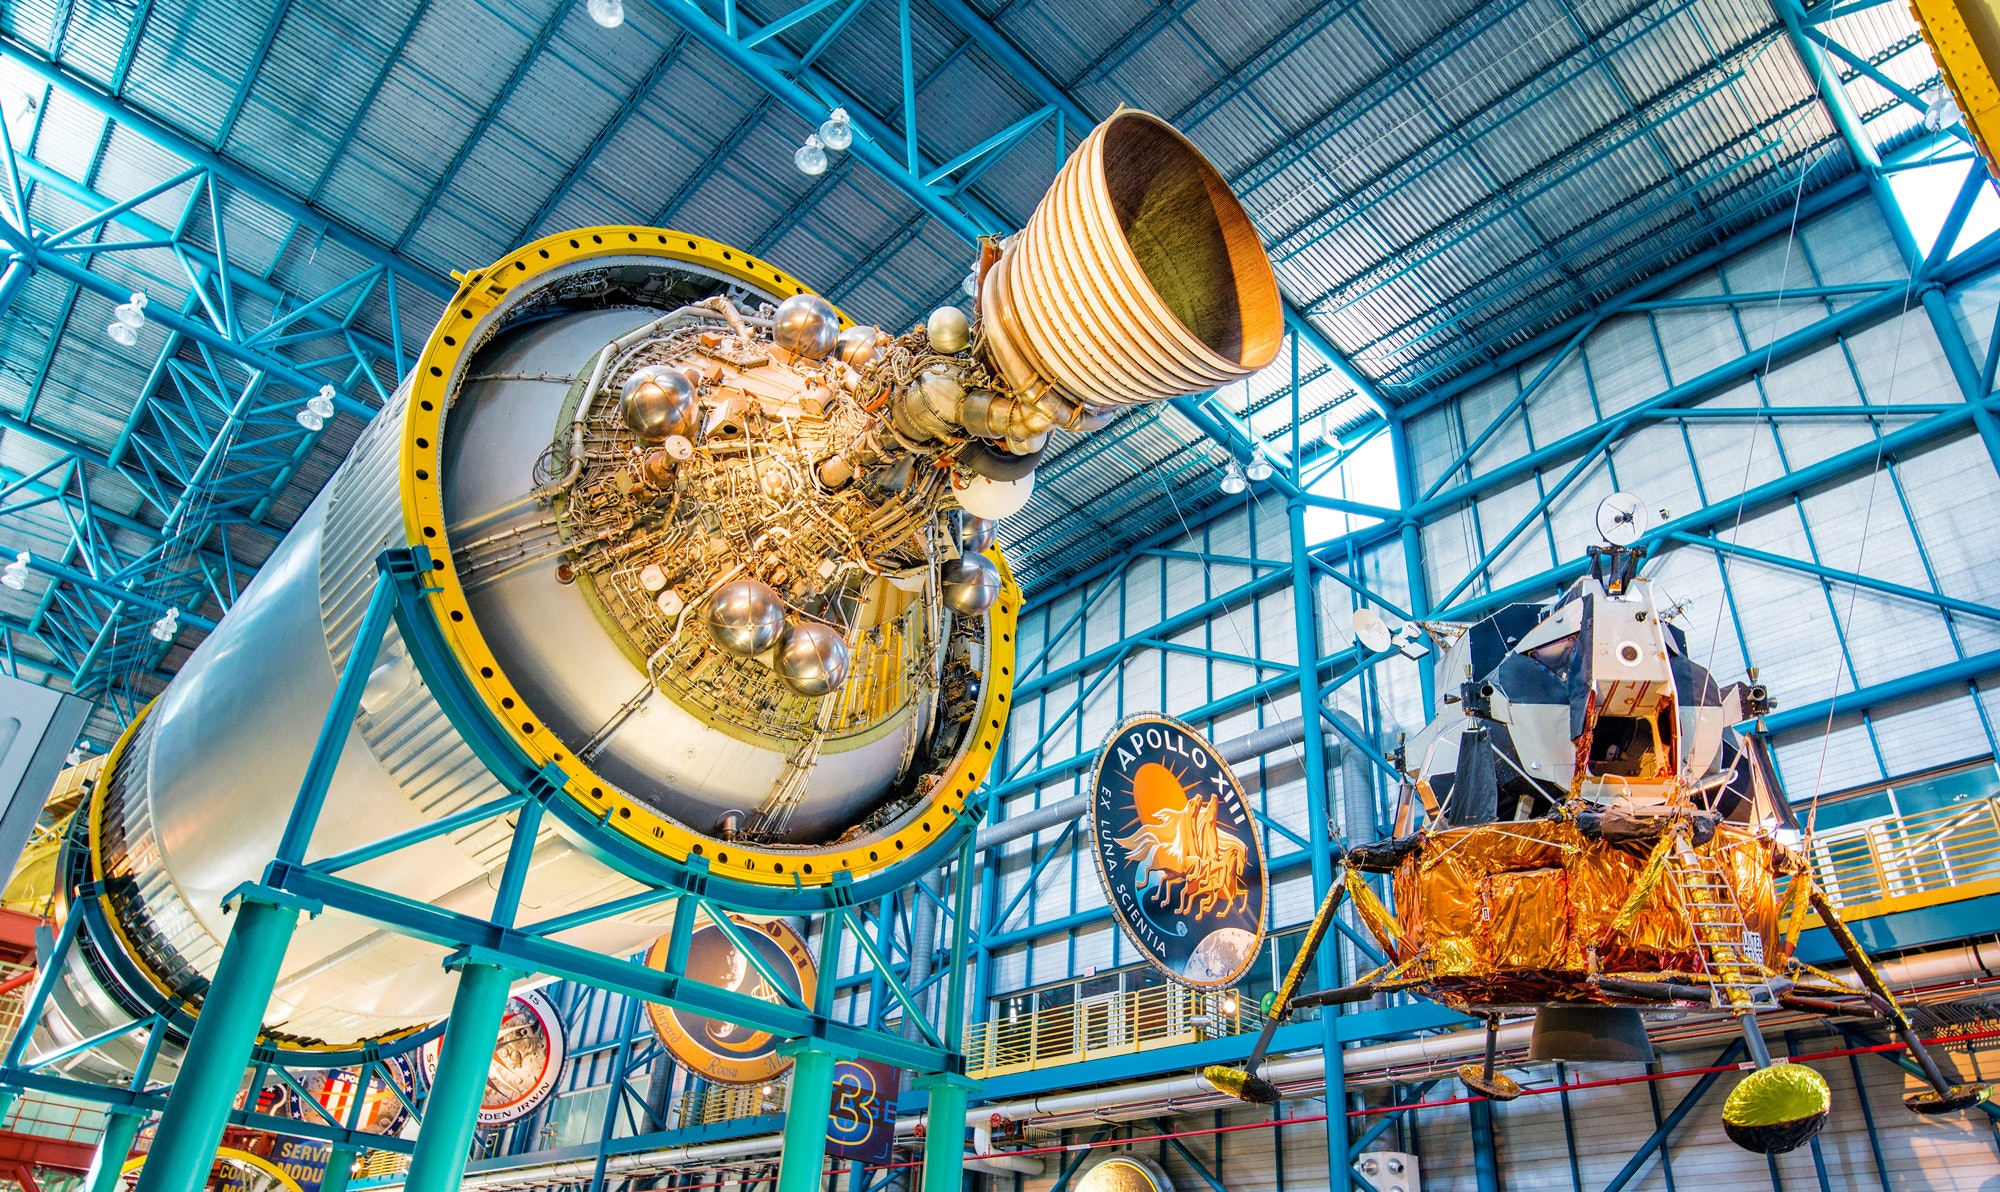 First stage engines from the Saturn 5 rocket on display at the Kennedy Space Center © NaughtyNut / Shutterstock